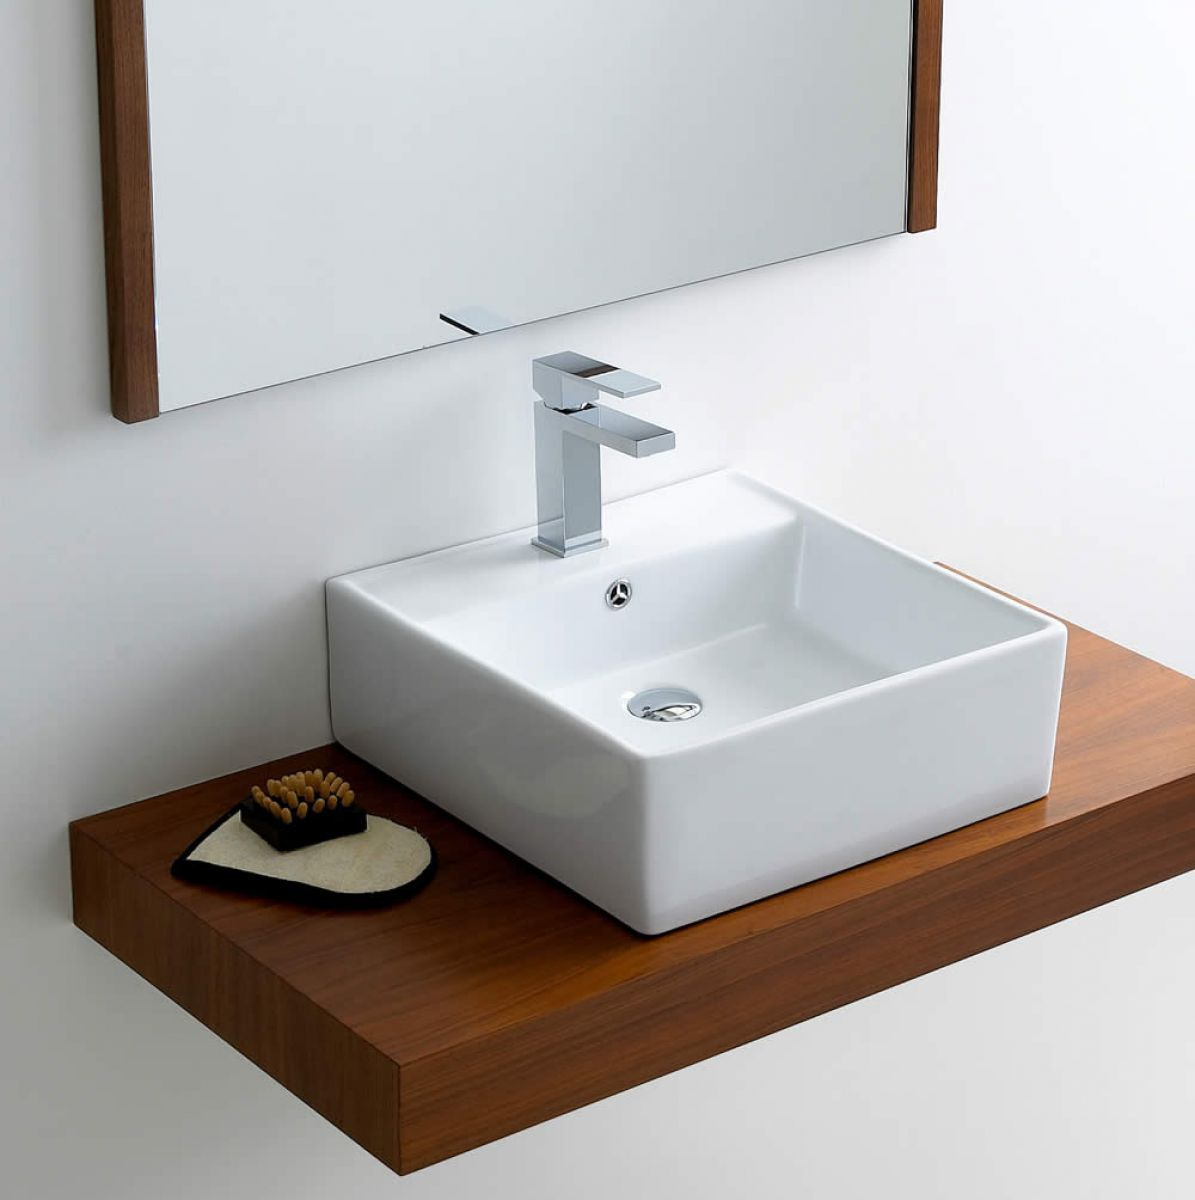 Phoenix Full Depth Countertop Washbasin VB008